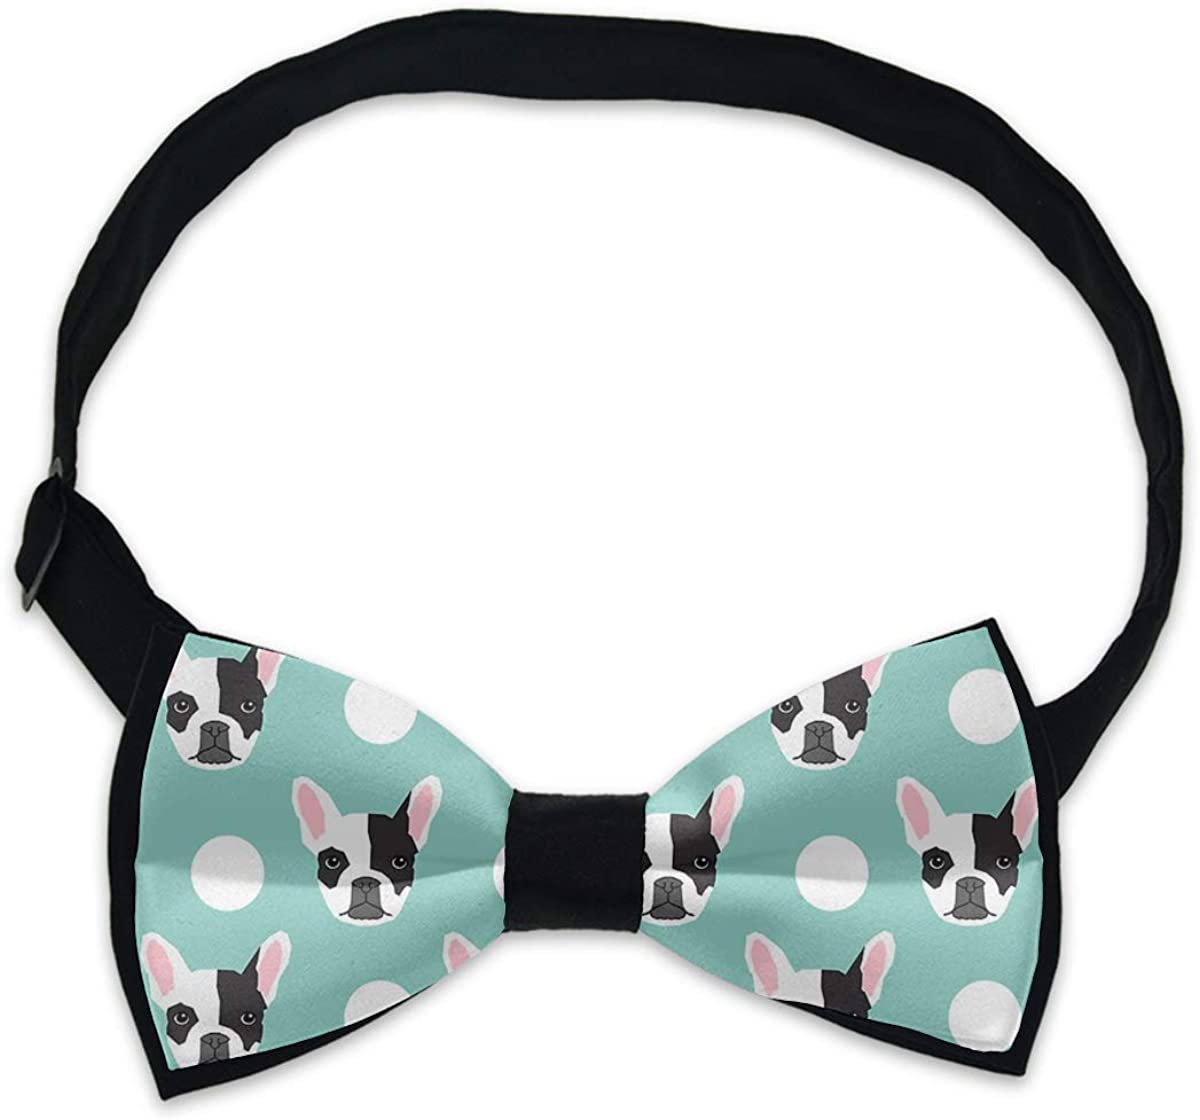 Birthday Bow Tie Gift, Casual And Formal Ties - Creative Gift